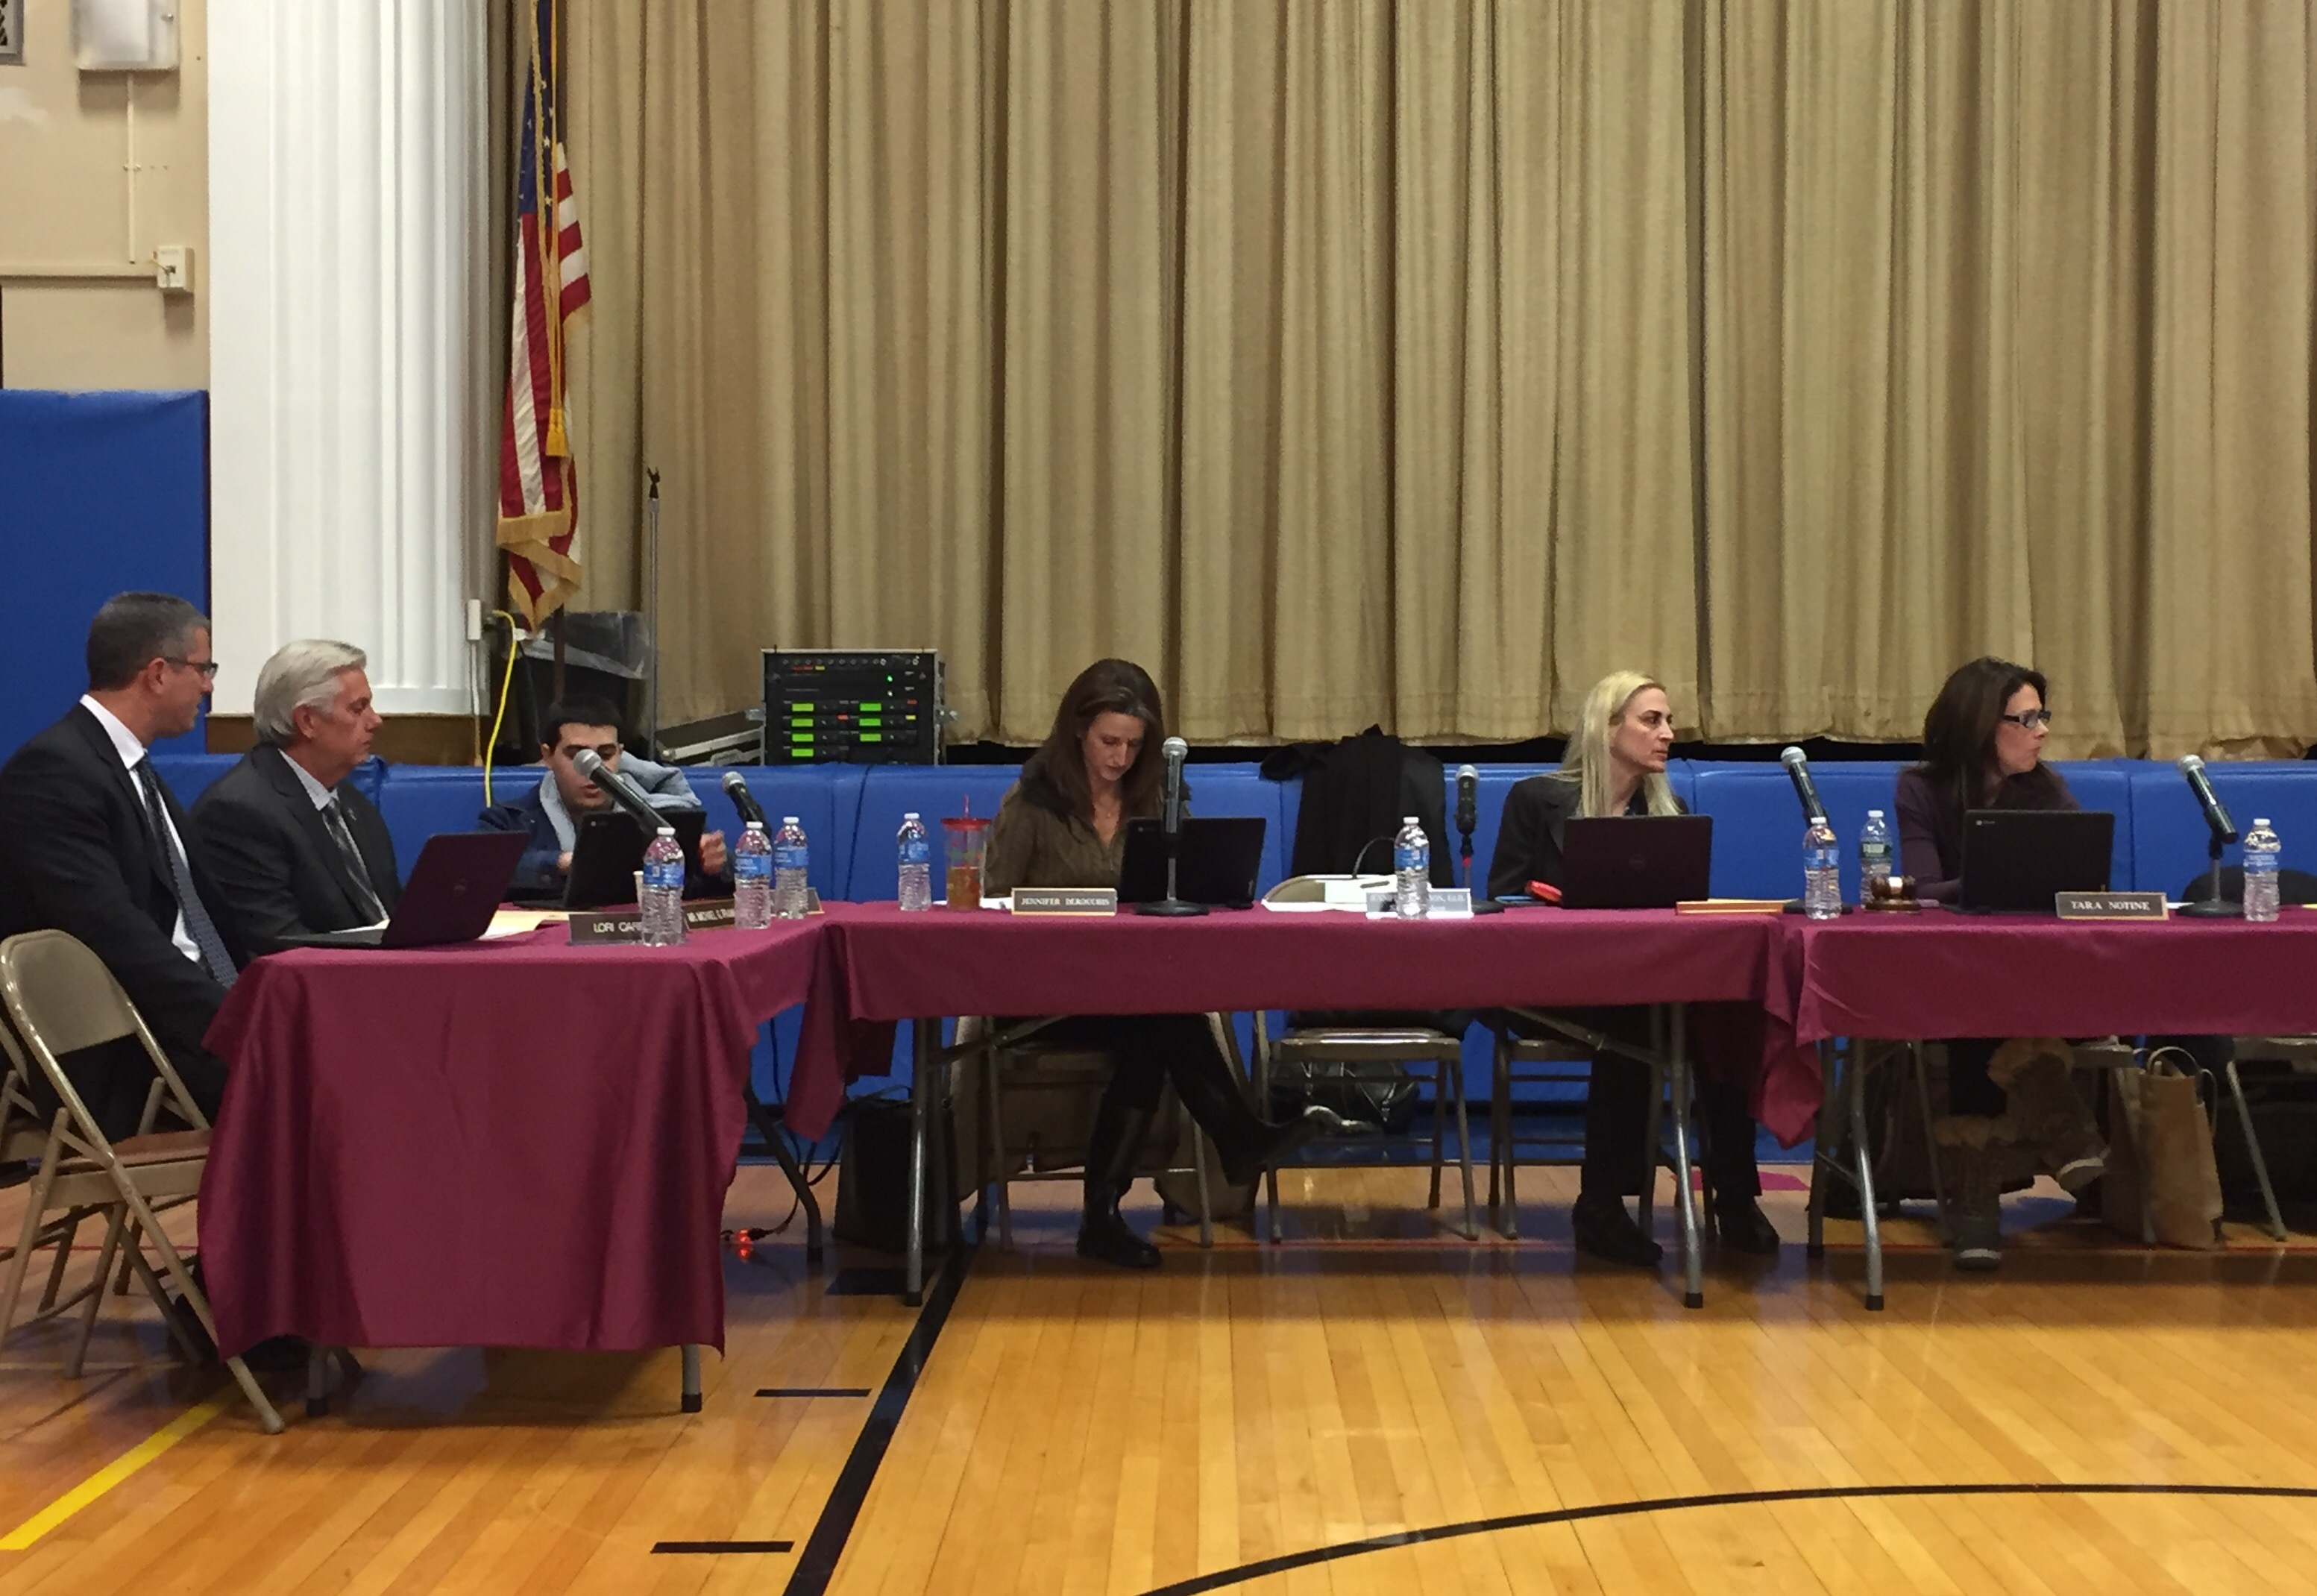 Nhp Gcp Seeks To Alleviate Substitute Teacher Shortage The Island Now